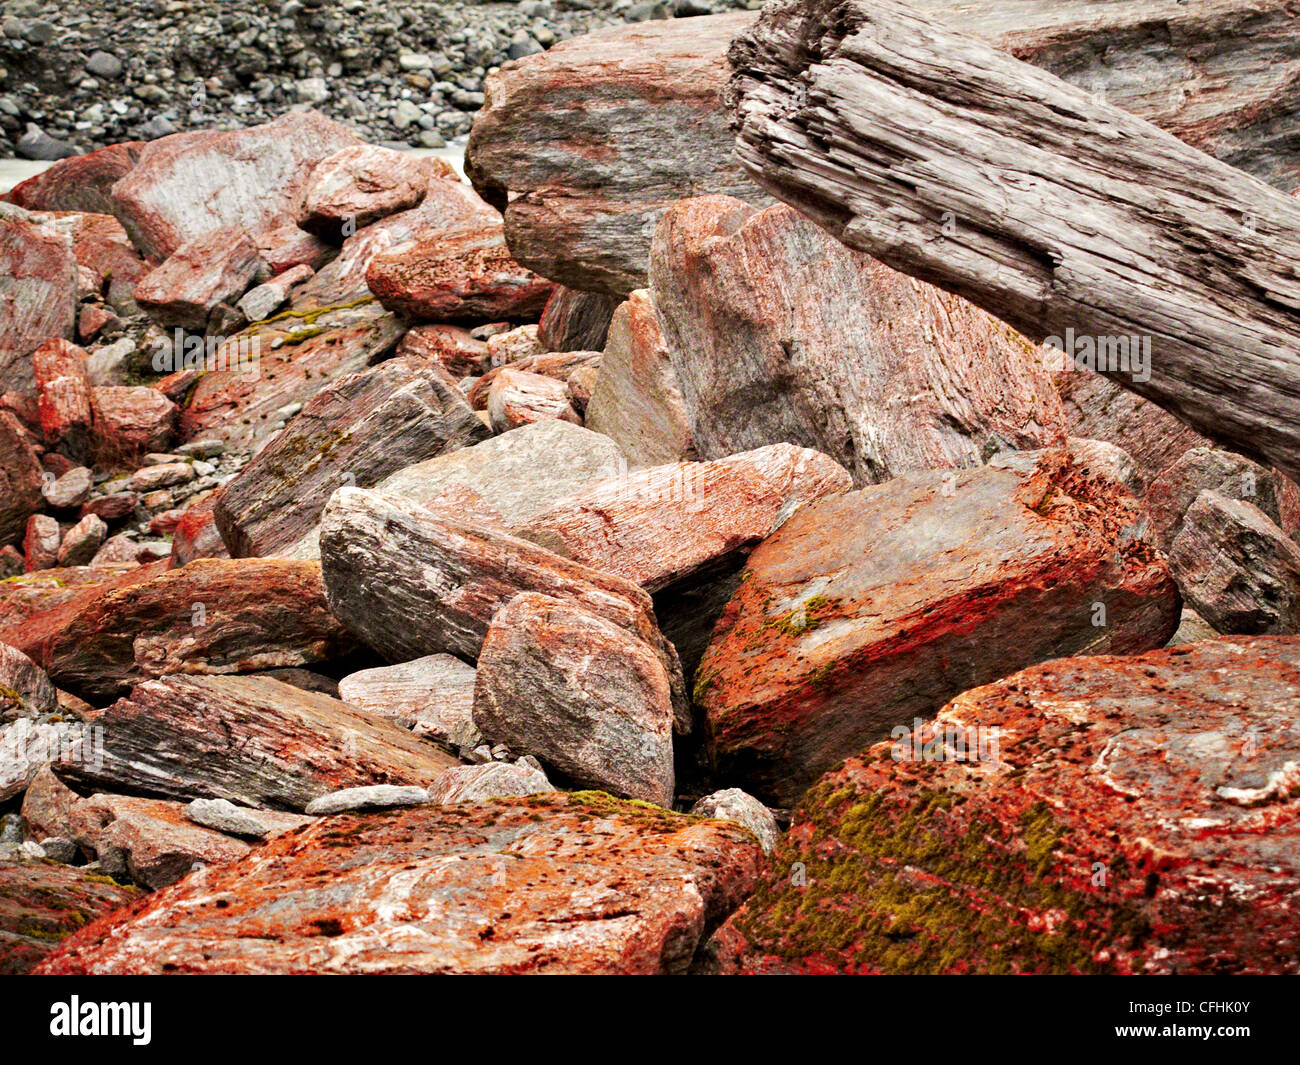 Looking in detail at the rocks from the surrounding area of Fox glacier new Zealand - Stock Image